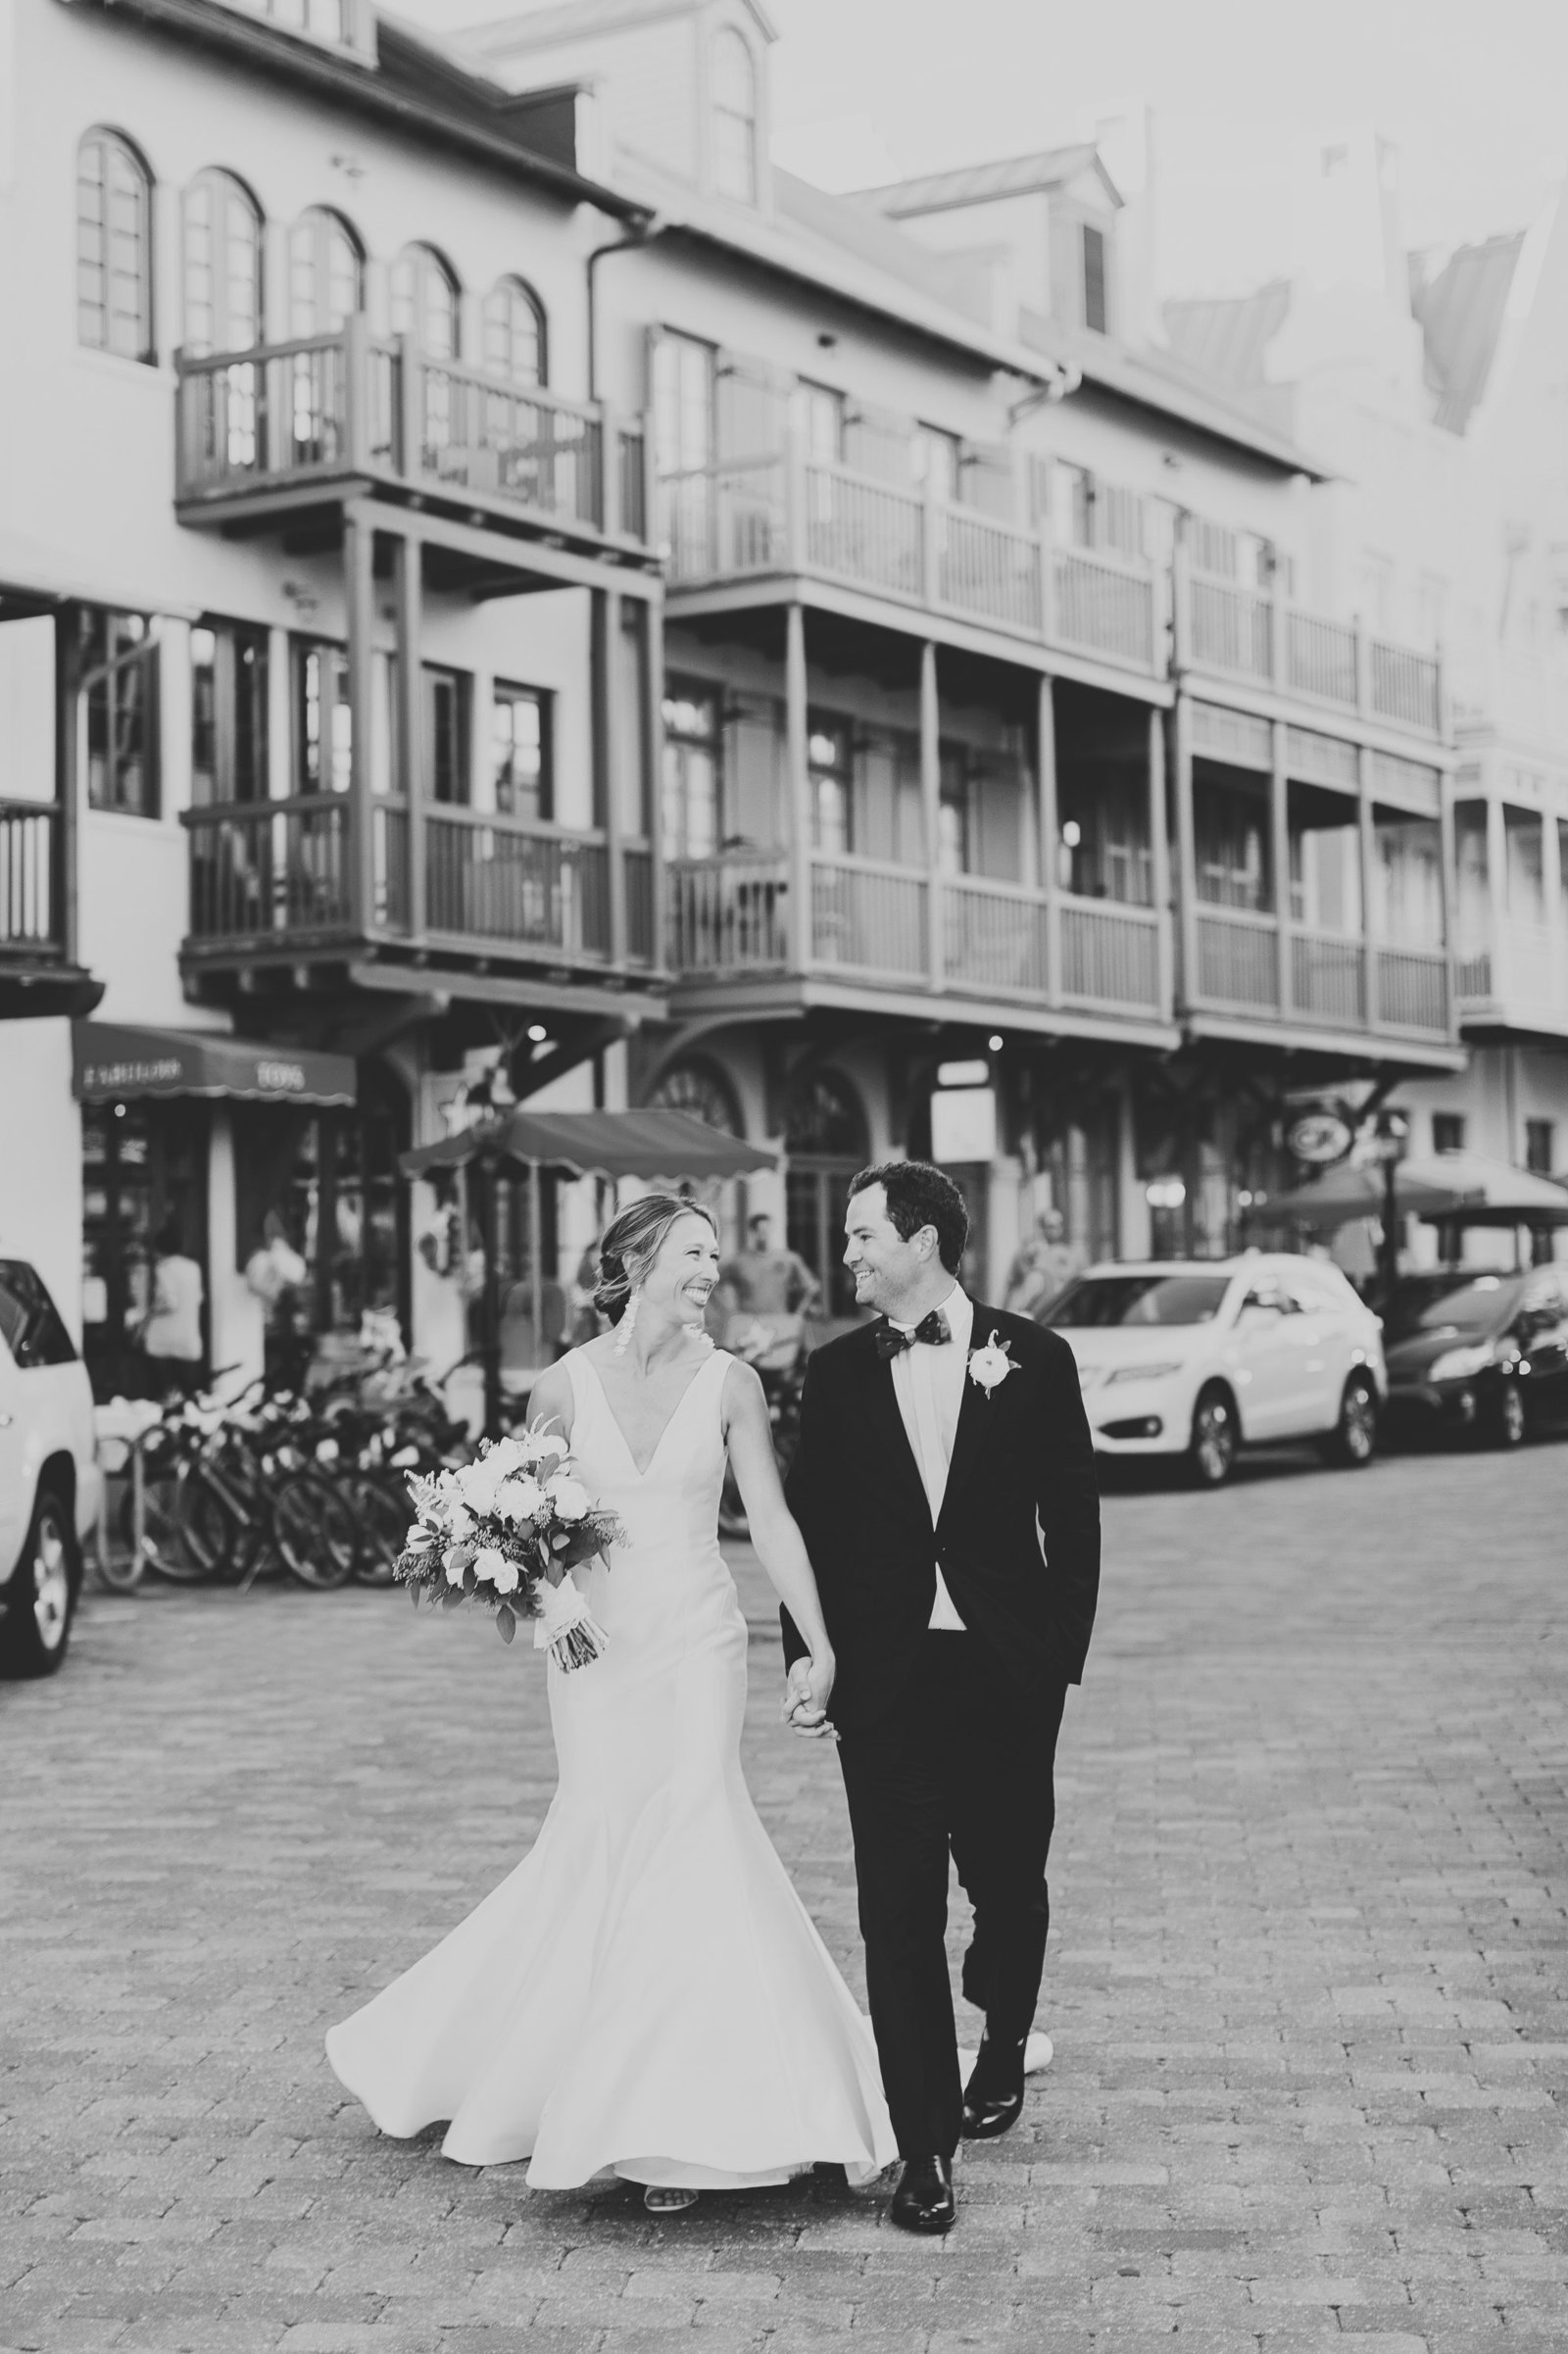 Rosemary Beach Wedding Photographer 30A Alys Beach_0111